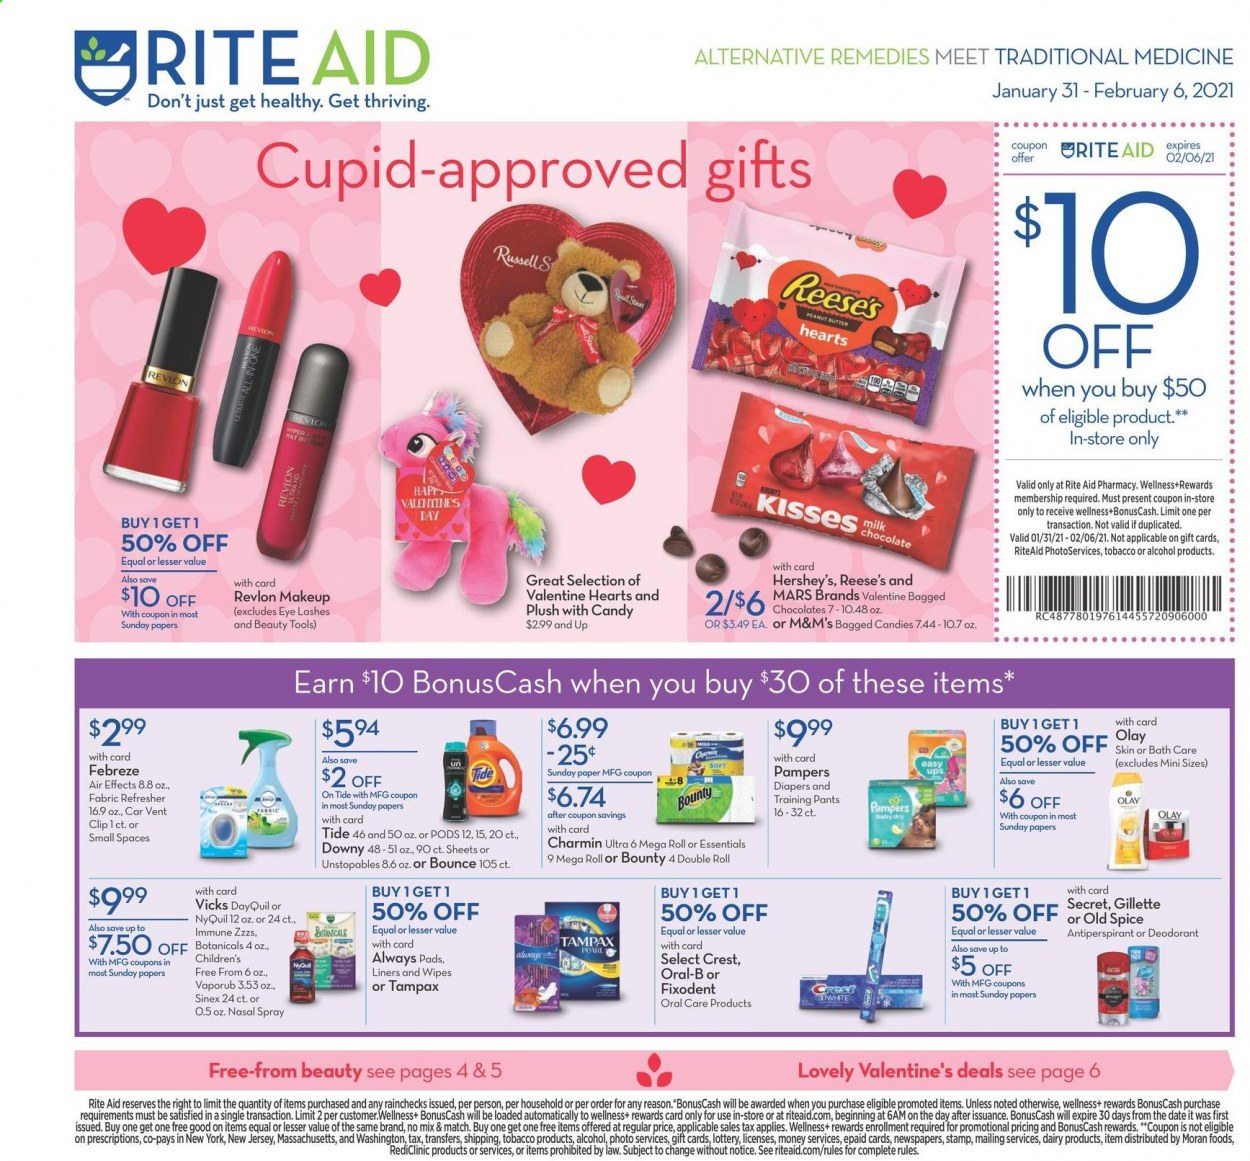 RITE AID Flyer - 01.31.2021 - 02.06.2021 - Sales products - milk, Reese's, Hershey's, chocolate, Bounty, Mars, M&M's, peanut butter, alcohol, Pampers, diapers, baby pants, Charmin, Febreze, wipes, Downy, Tide, Unstopables, Bounce, Old Spice, Oral-B, Fixodent, Crest, Tampax, Always pads, Olay, refresher, Revlon, anti-perspirant, secret, deodorant, Gillette, Vicks, makeup, DayQuil, NyQuil, VapoRub, nasal spray, Sinex, essentials. Page 1.